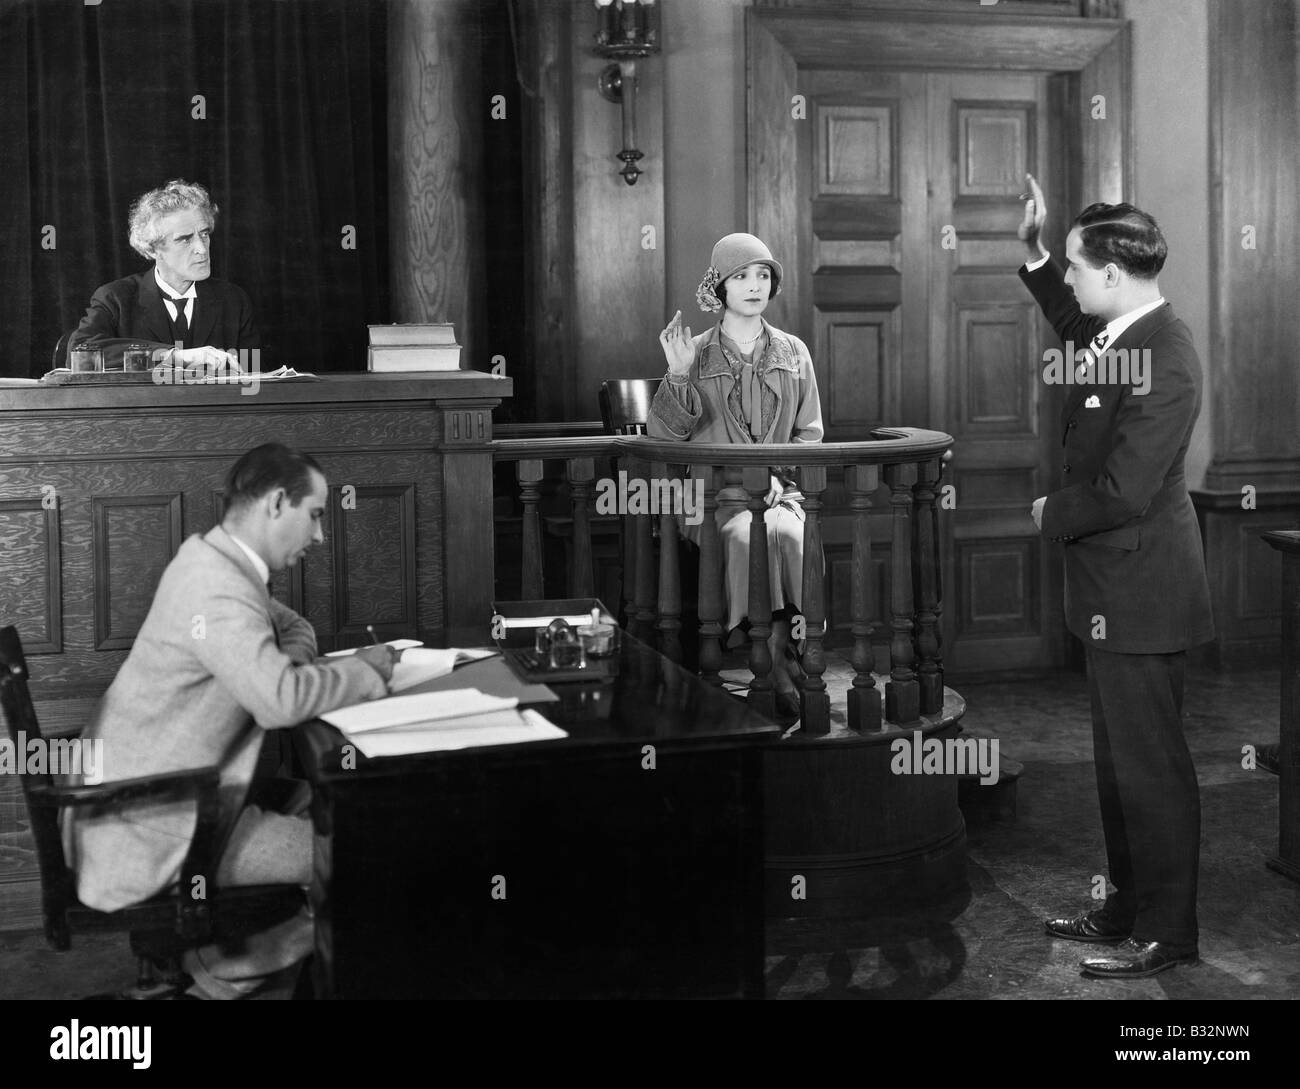 Lawyer Courtroom Case Stock Photos Andrew Smith Red Denim Merah 32 Swearing In Witness Image